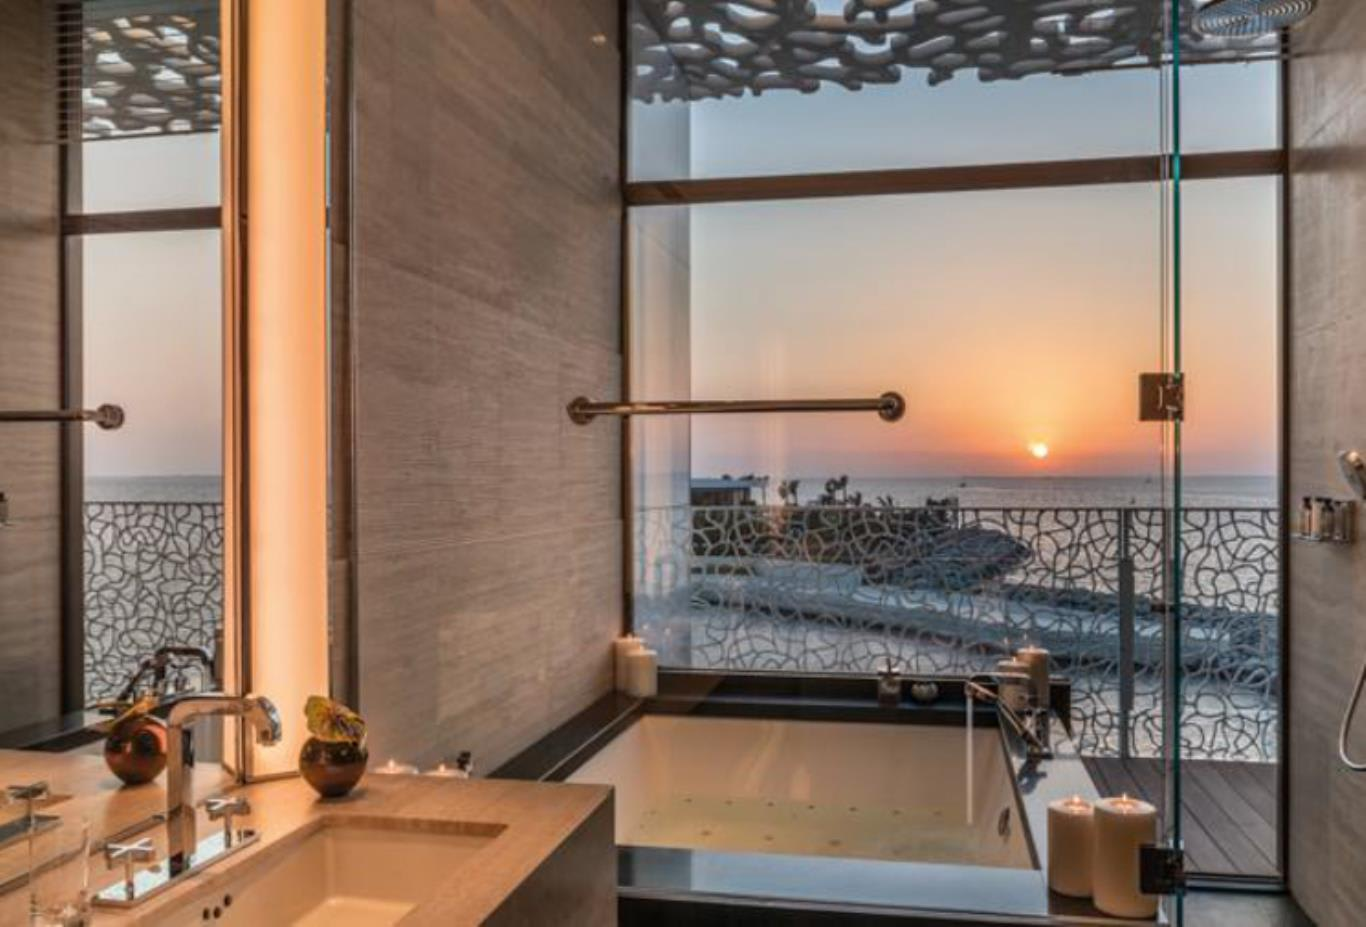 Bulgari bathroom view